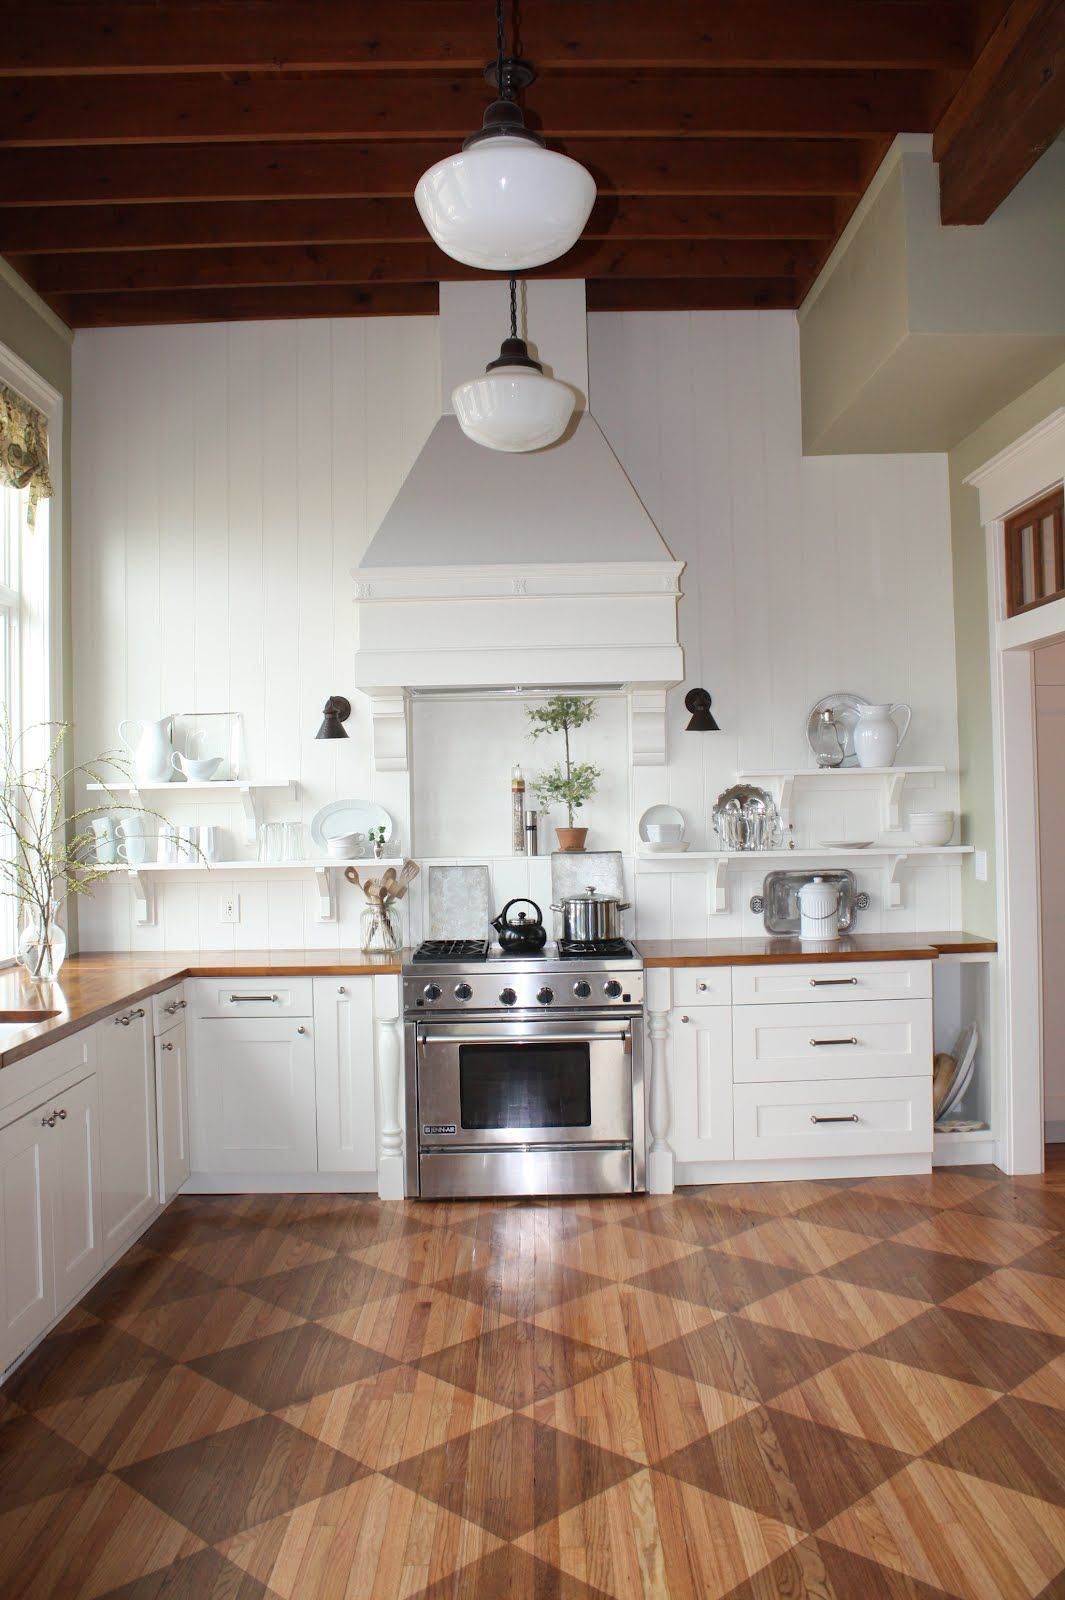 Checkered Kitchen Floor Favorite Pin Friday Kitchen Makeover From 1912 Home Home